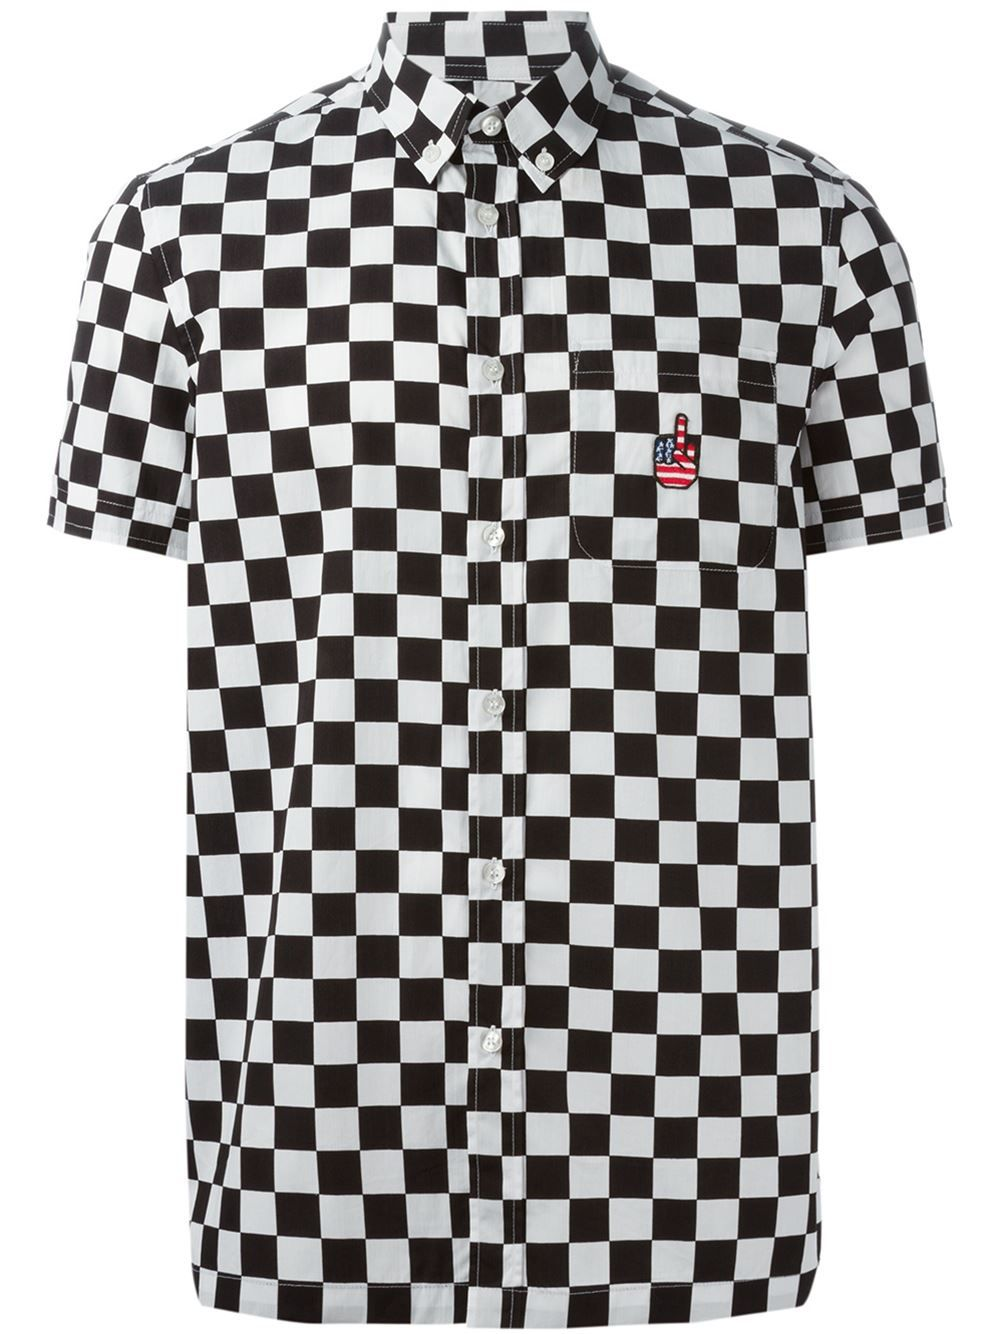 Love Moschino Check Button Down Shirt - Twist'n'scout - Farfetch.com